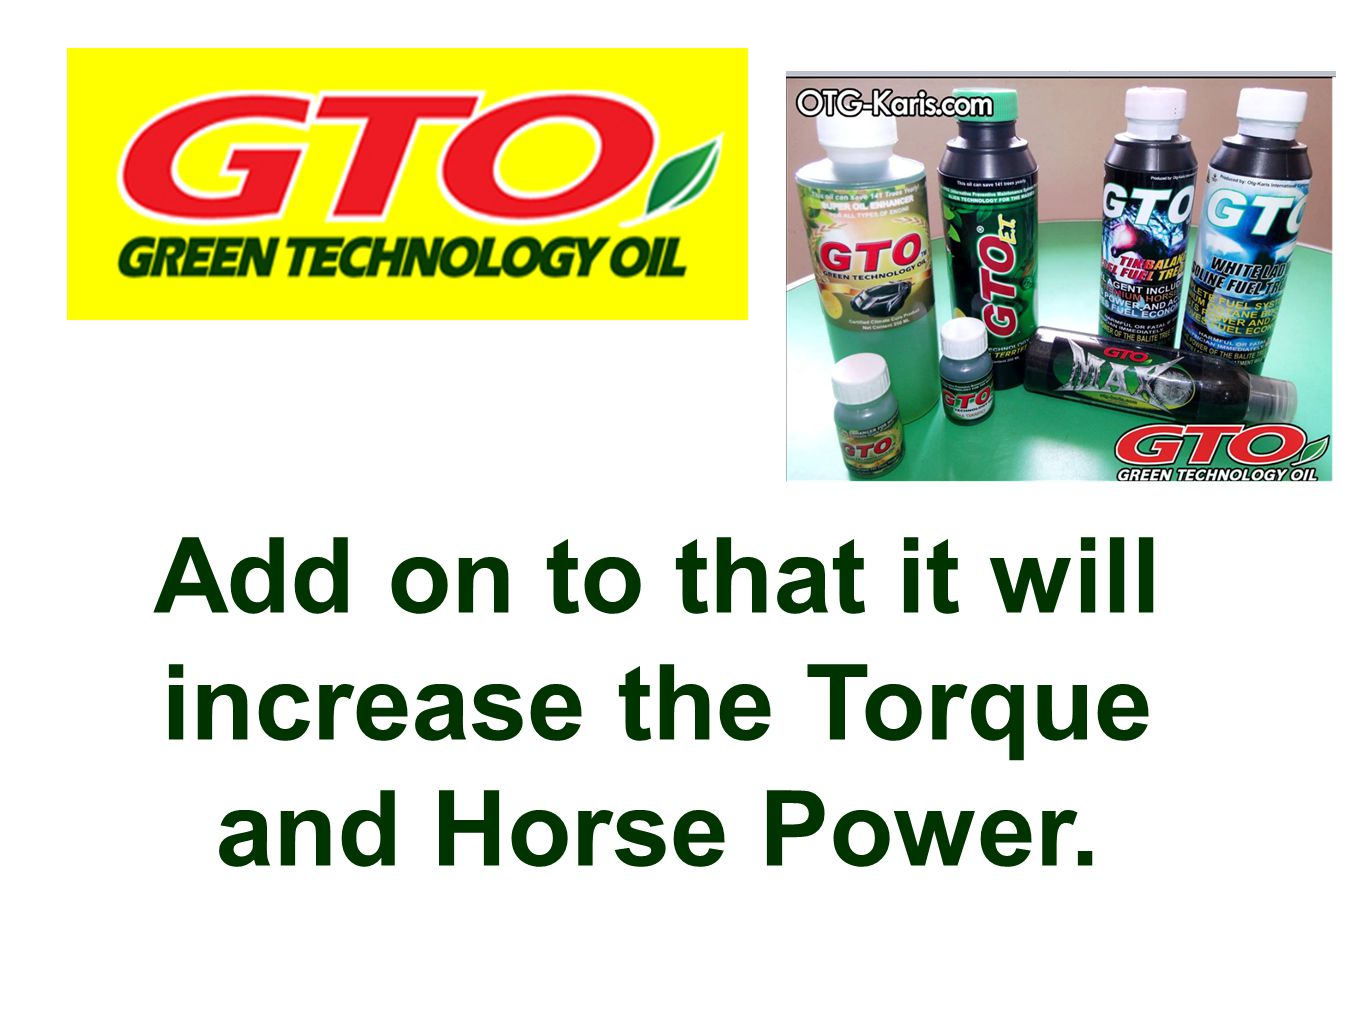 Add on to that it will increase the Torque and Horse Power.